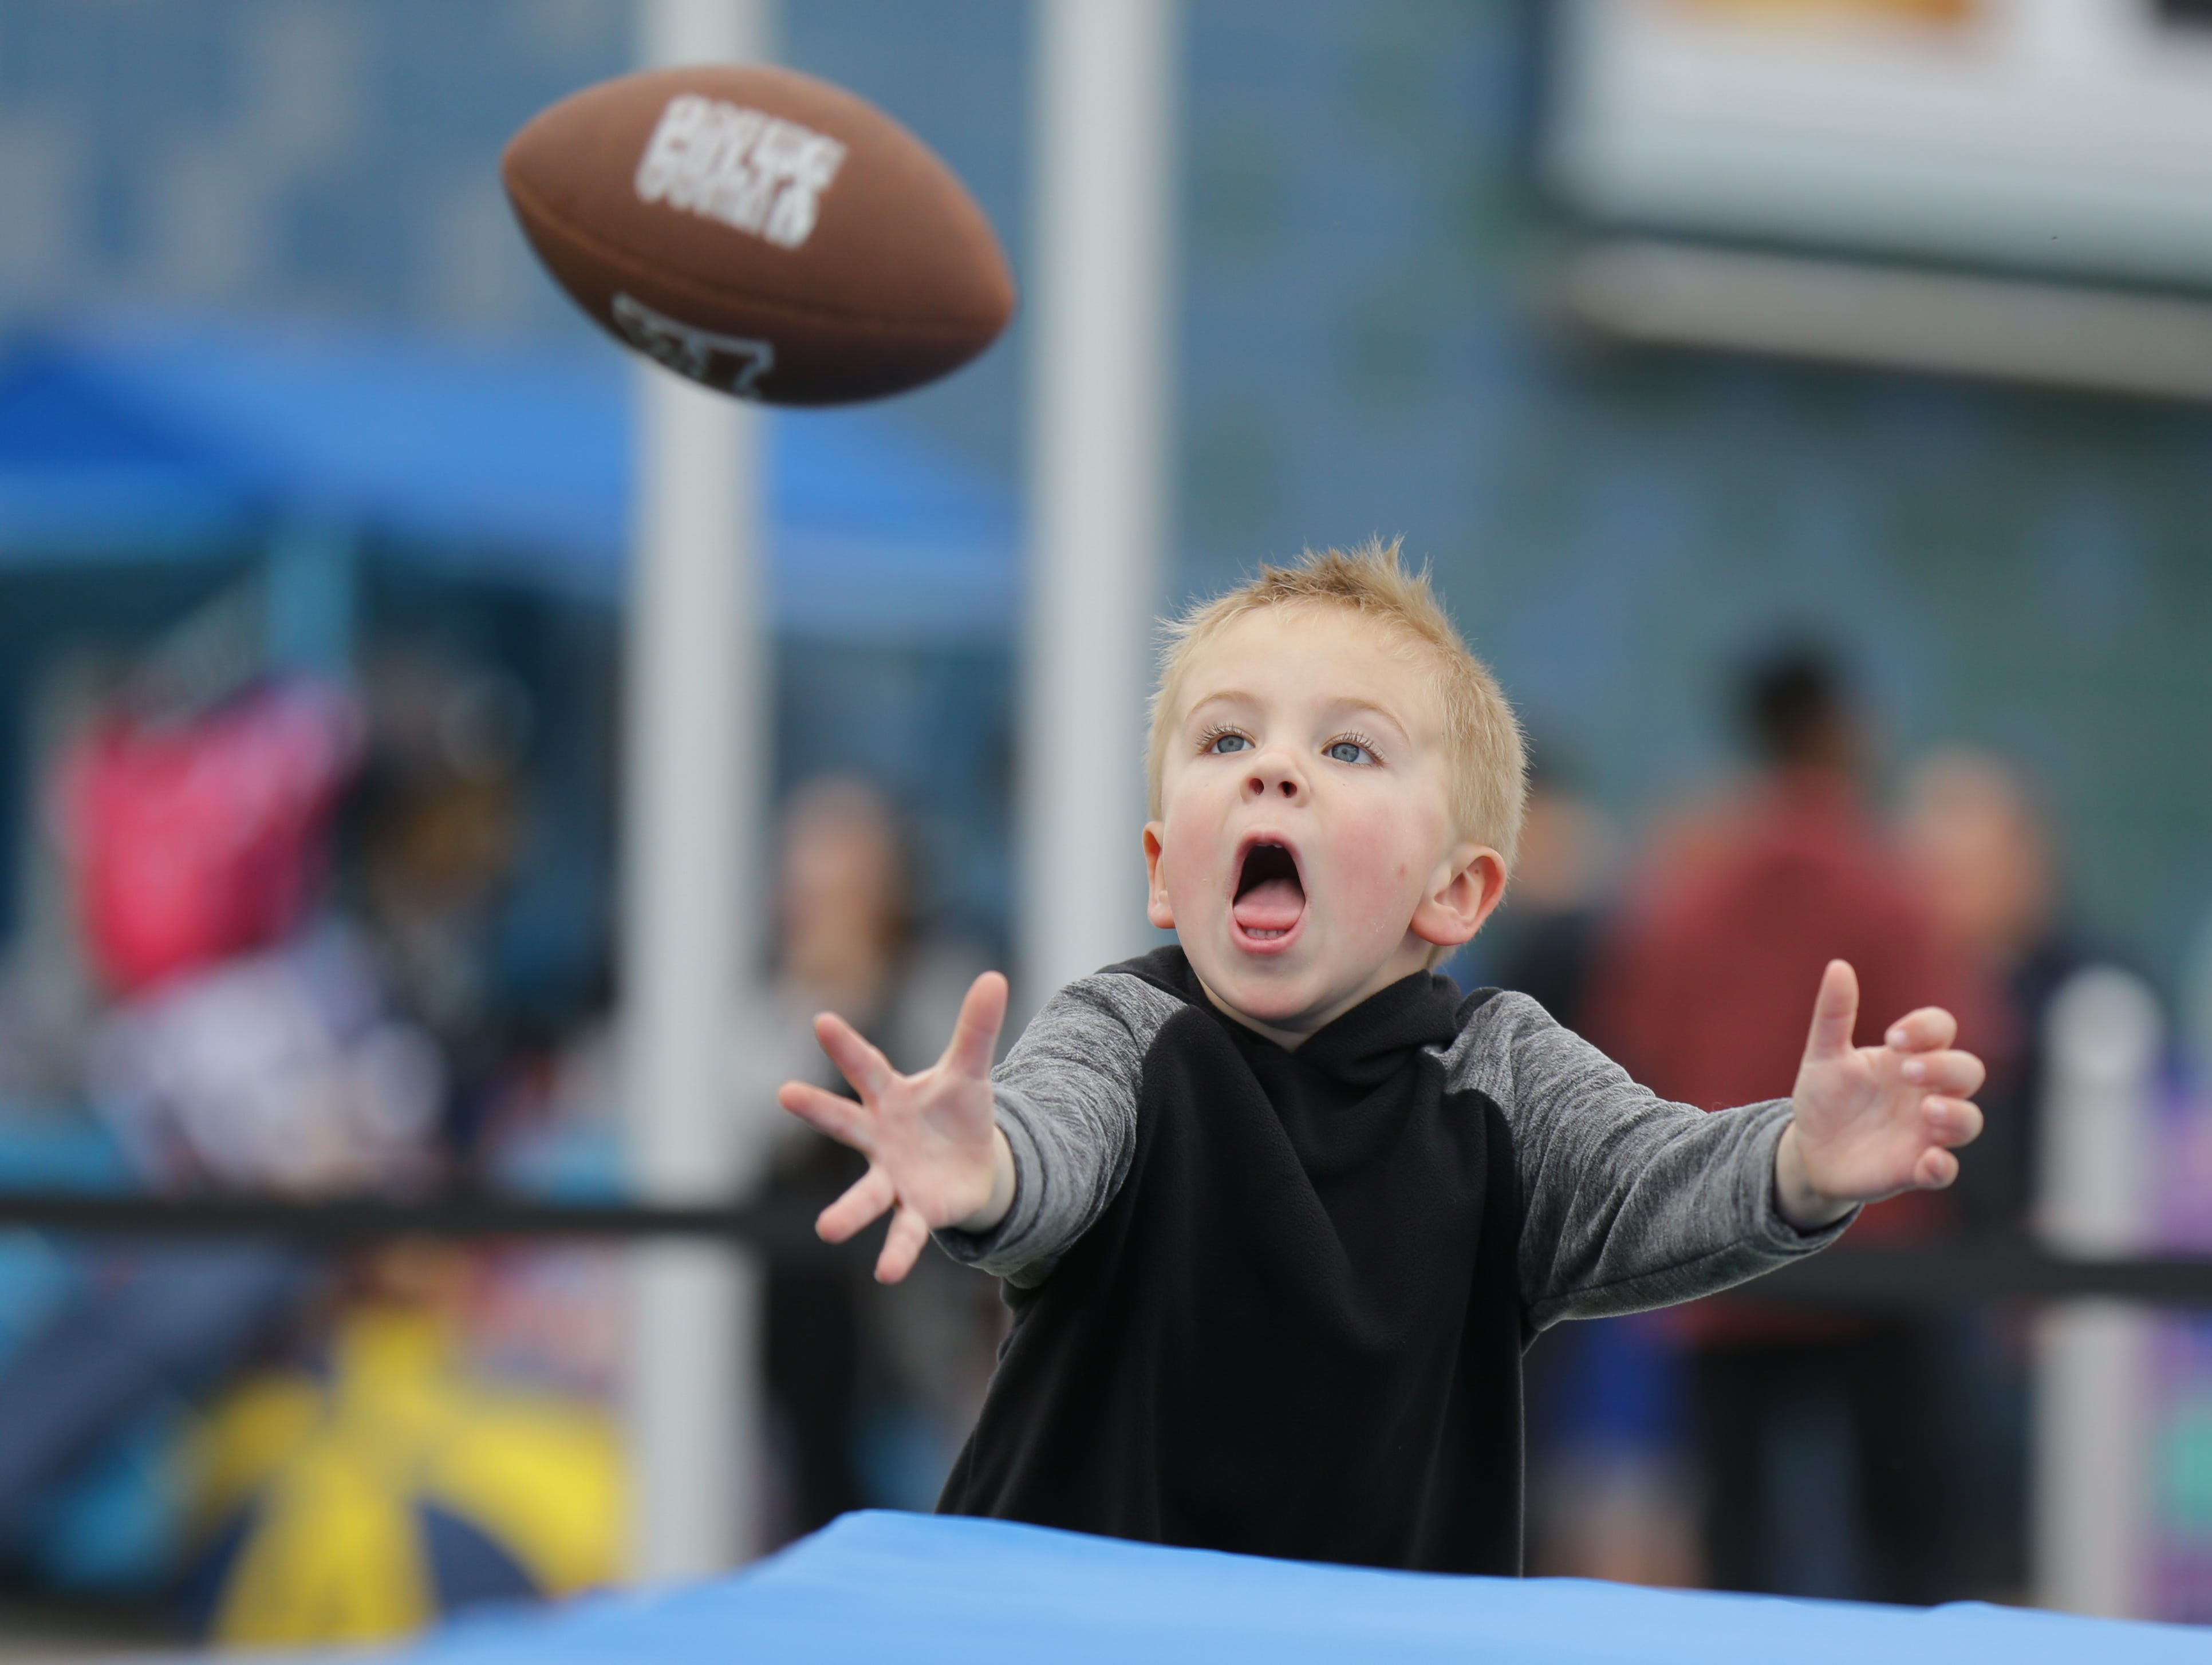 Jack Farr races to make a catch during a visit to the Riley Children's Health Sports Legends Experience at the Children's Museum of Indianapolis on Wednesday, March 28, 2018.